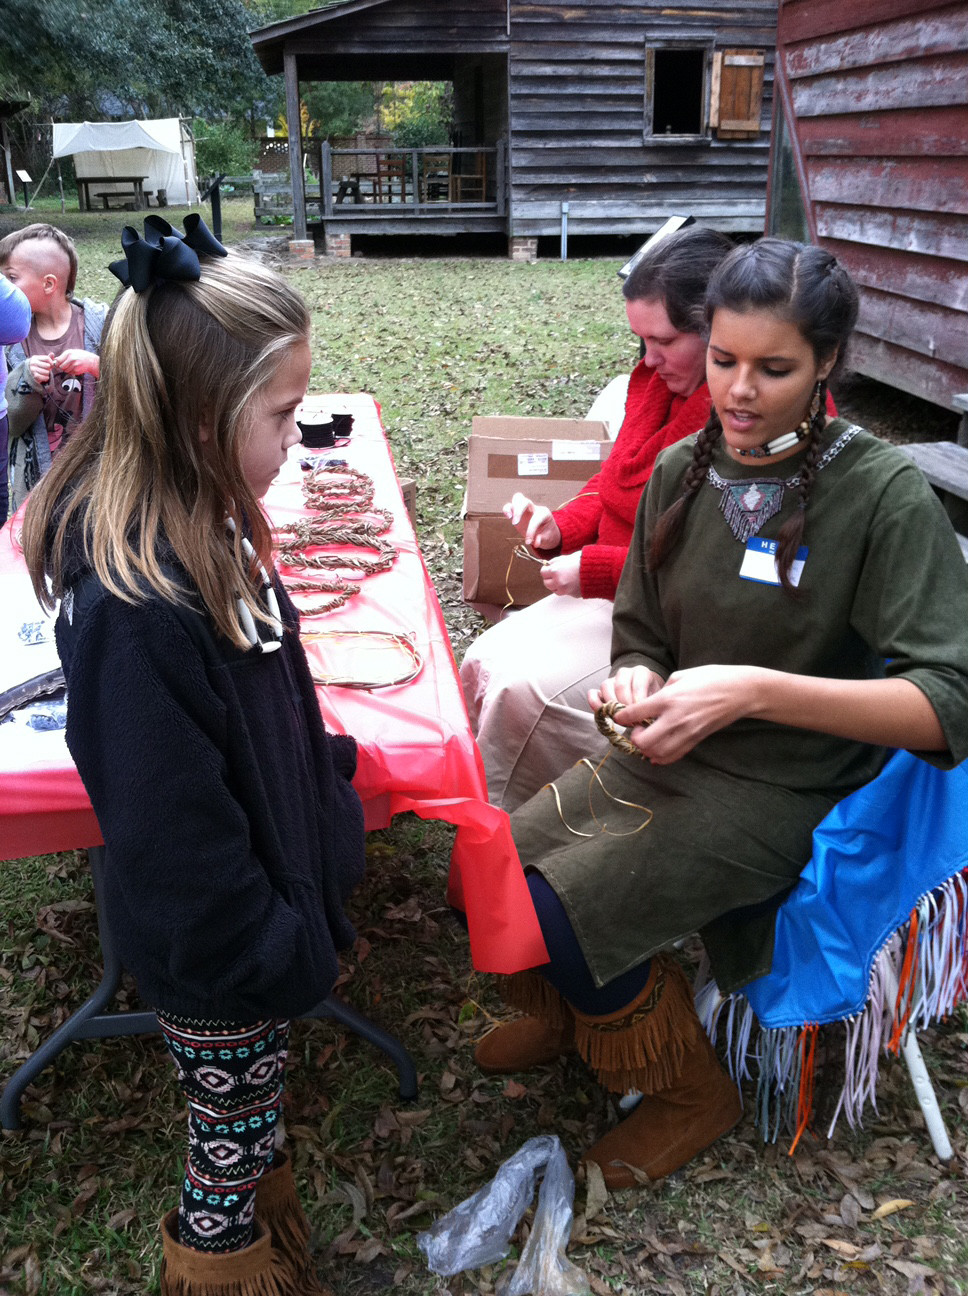 Karli Hudson helps a child make a dream catcher at a previous tribe event. This year's Sumter Native American Festival will be held from 11 a.m. to 3 p.m. at the Sumter County Museum, 122 N. Washington St.